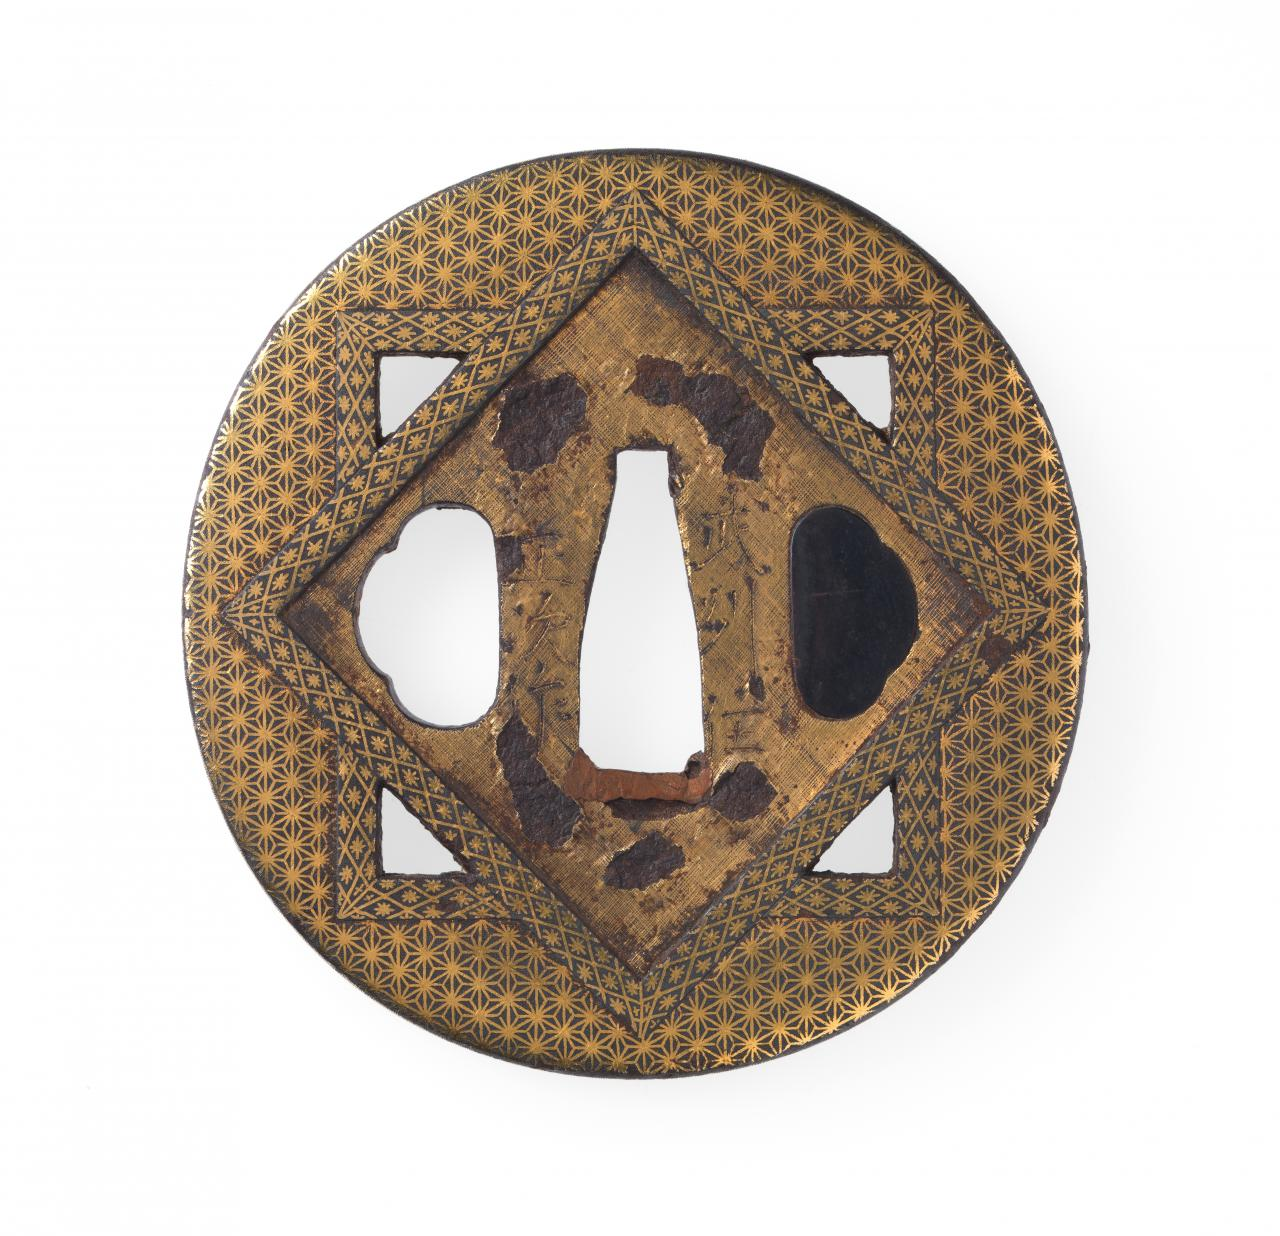 Sword guard with hemp leaf motif and interlocking square design